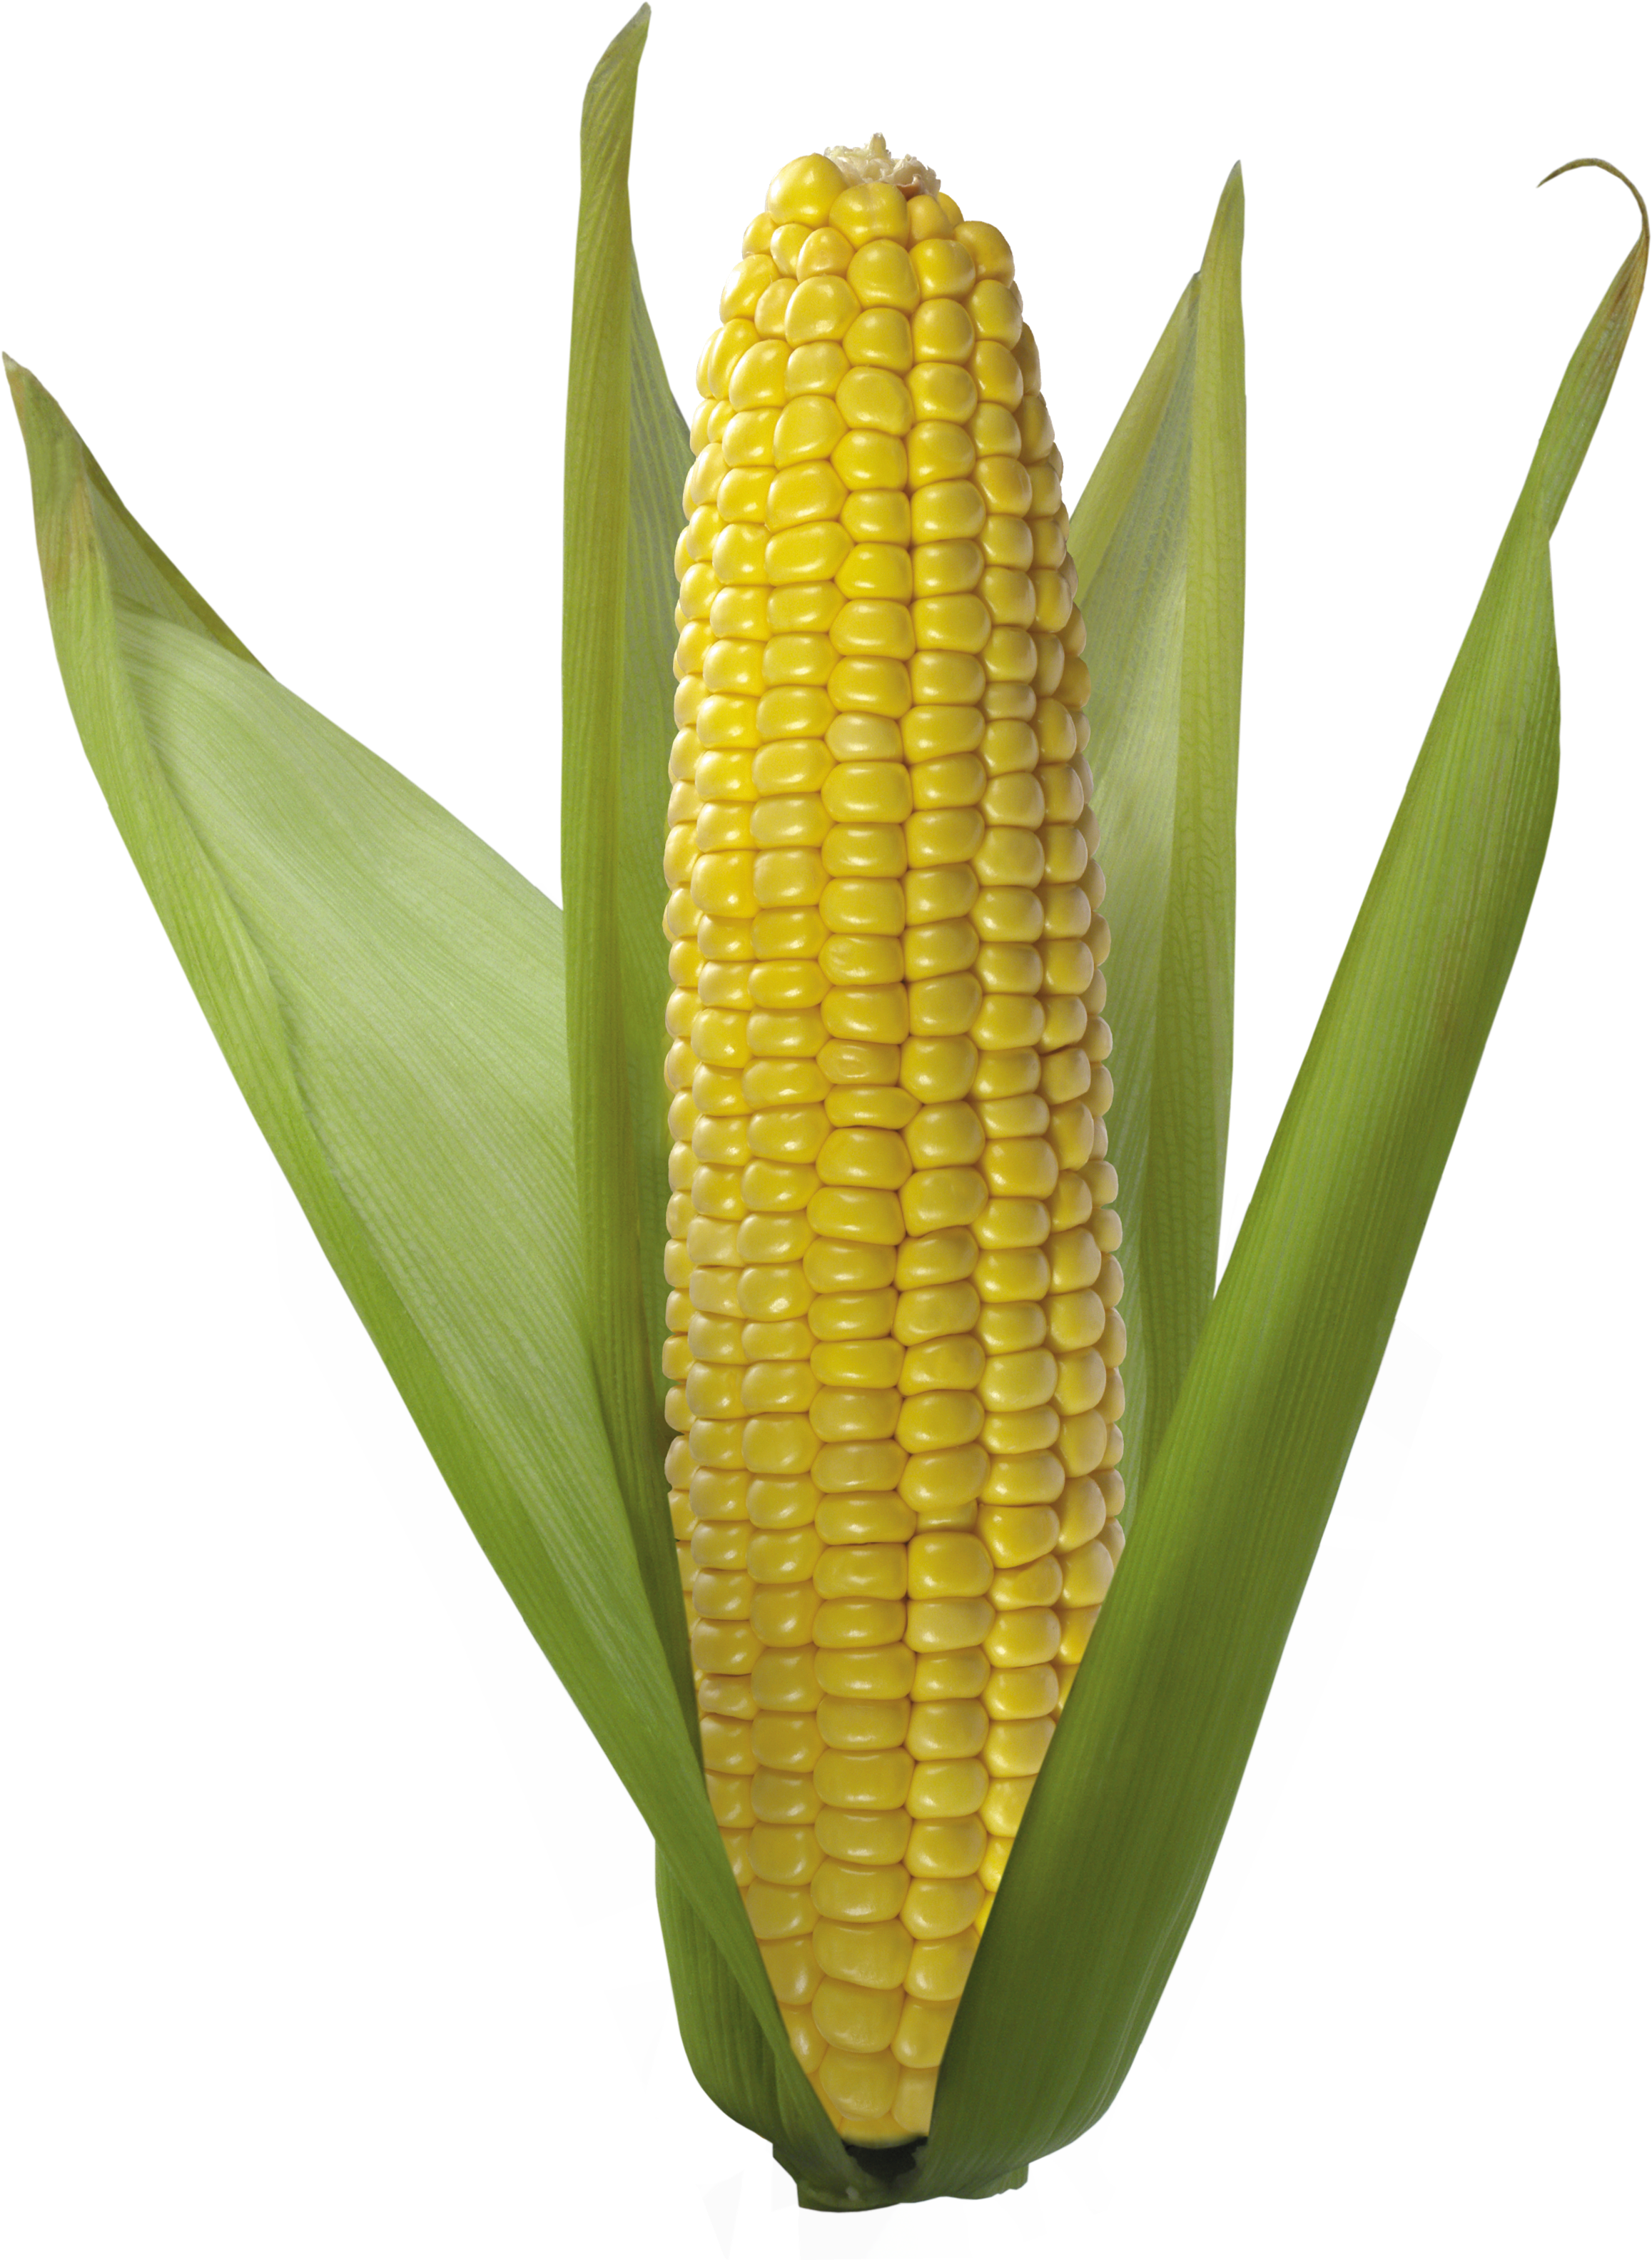 Kernel clipart corn seed. Png images download yellow